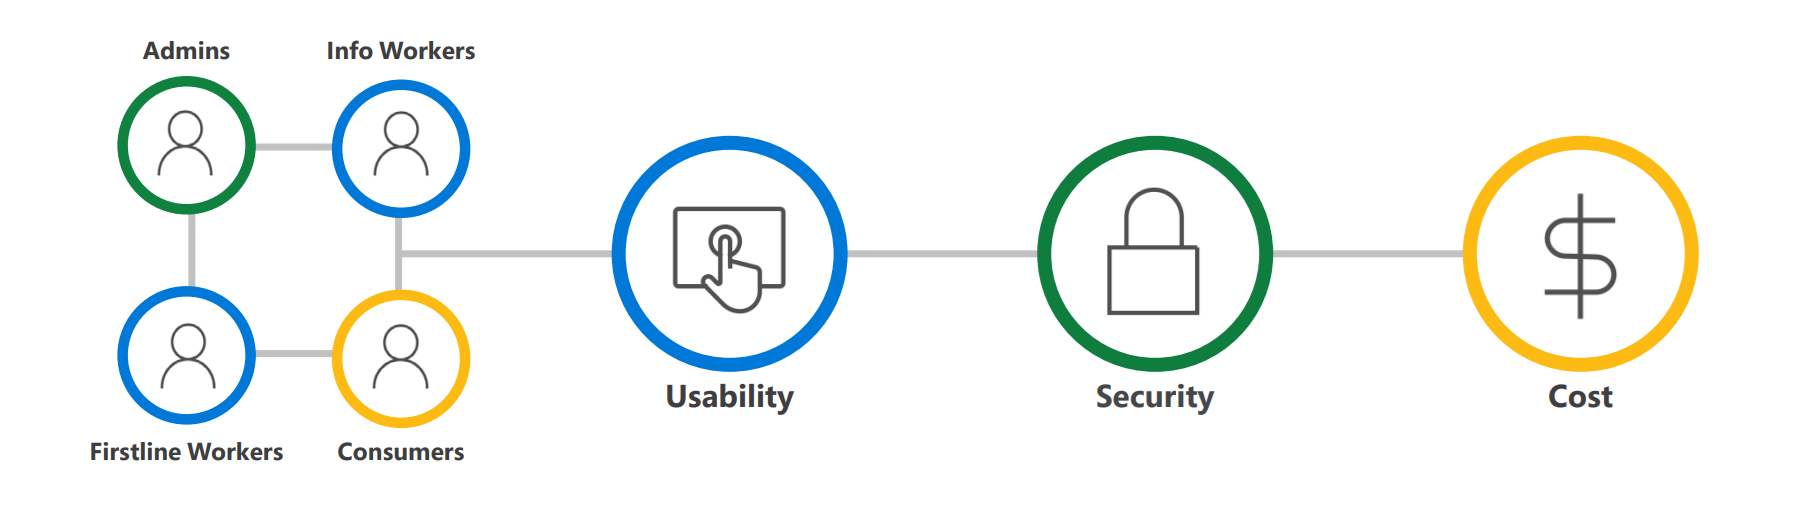 Workflow from left to right showcasing the authentication process for how administrators, info workers, firstline workers, and consumers arrive at the Usability, Security, and Cost value additions for passwordless authentication.